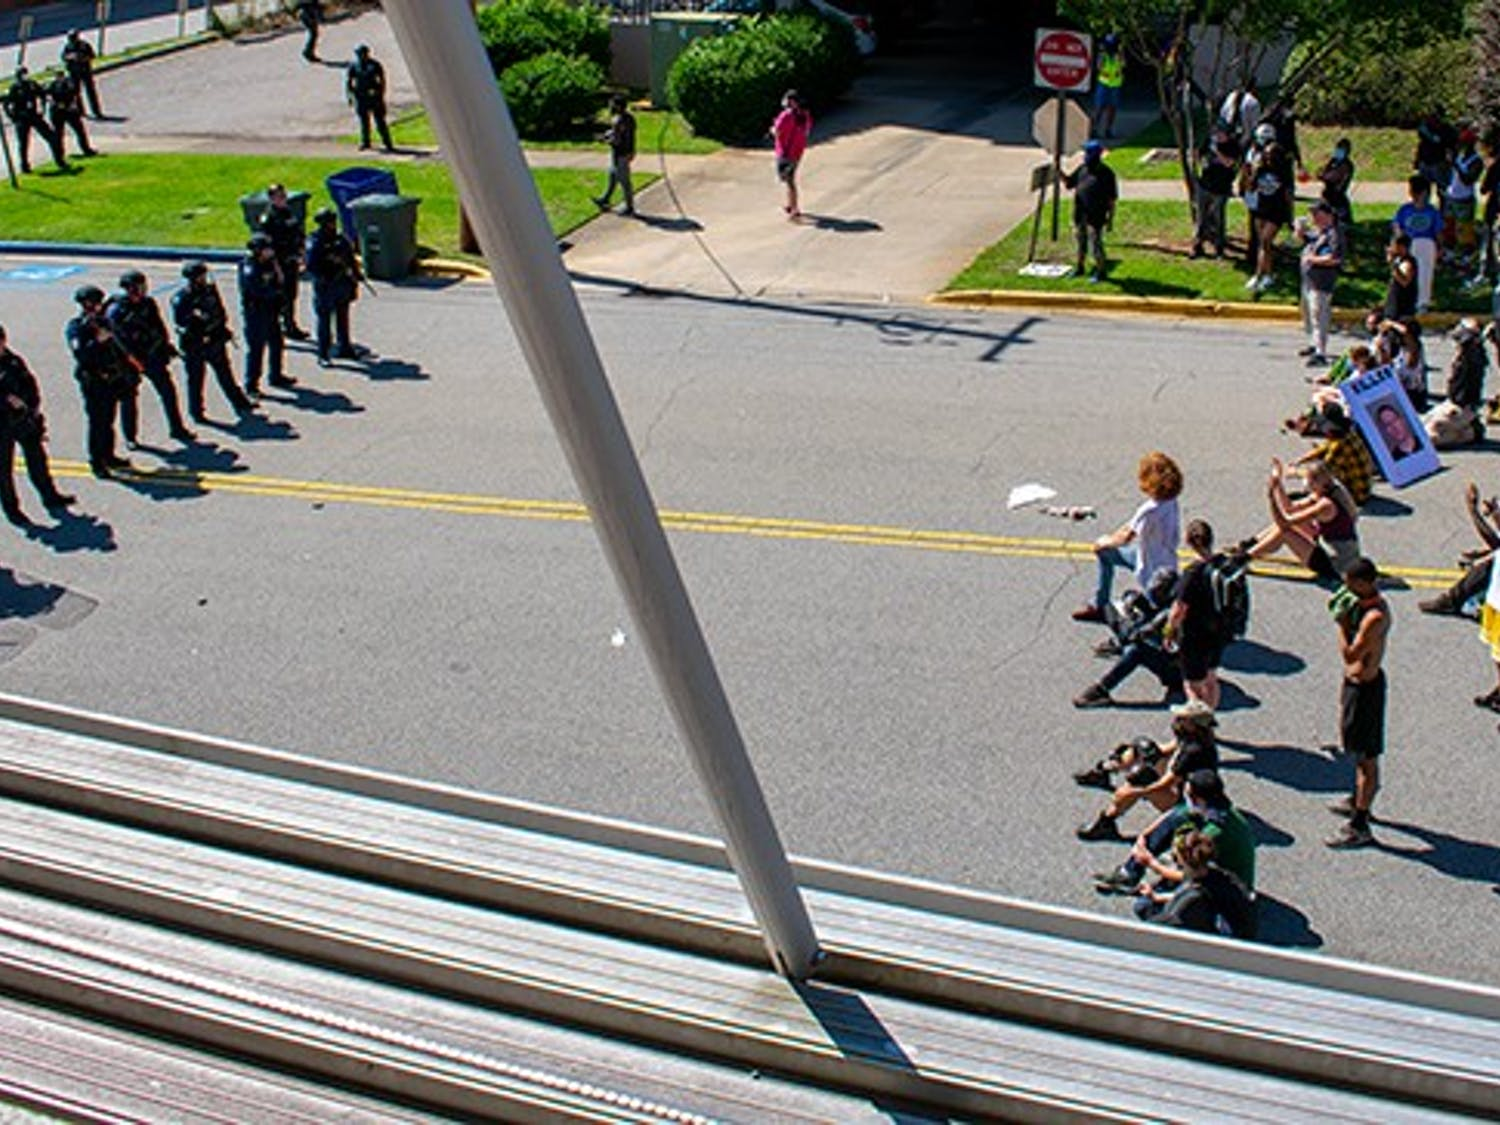 """Protesters kneel across from a line of armed police officers in front of the Columbia Municipal Court at the """"I Can't Breathe"""" protest on May 30."""